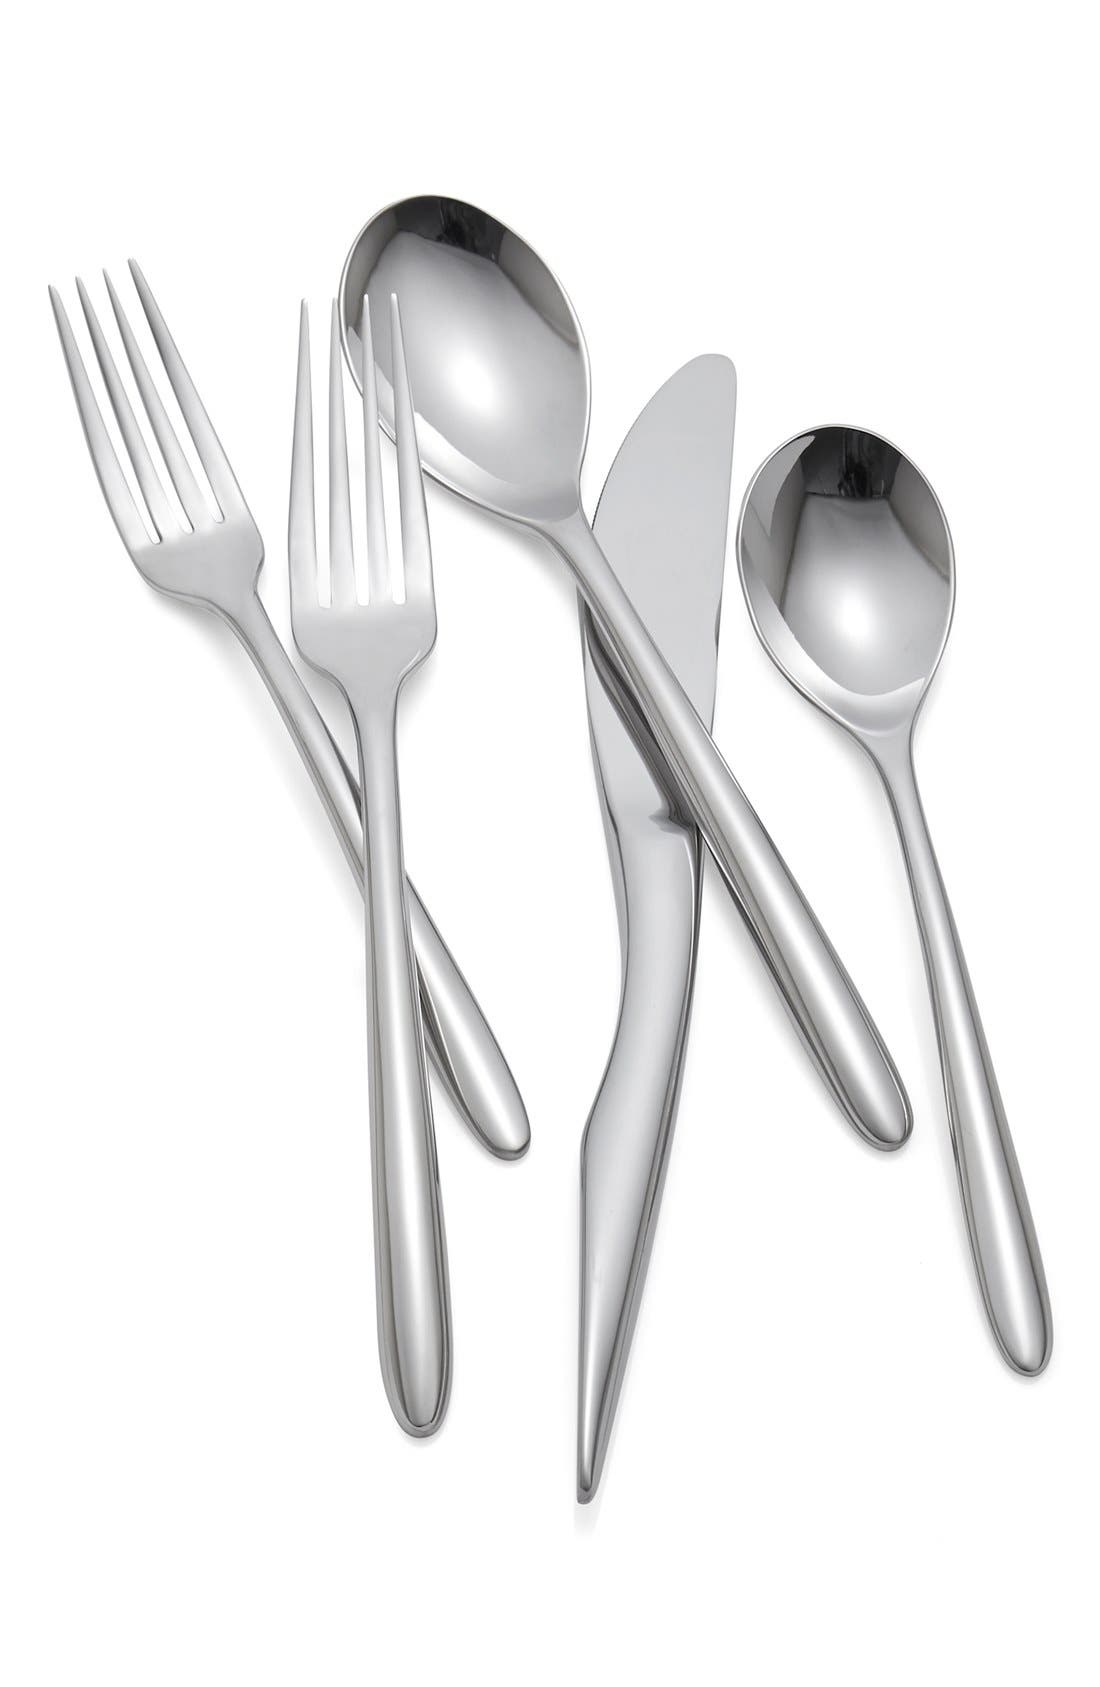 'Dune' 5-Piece Stainless Steel Table Setting,                         Main,                         color, Silver